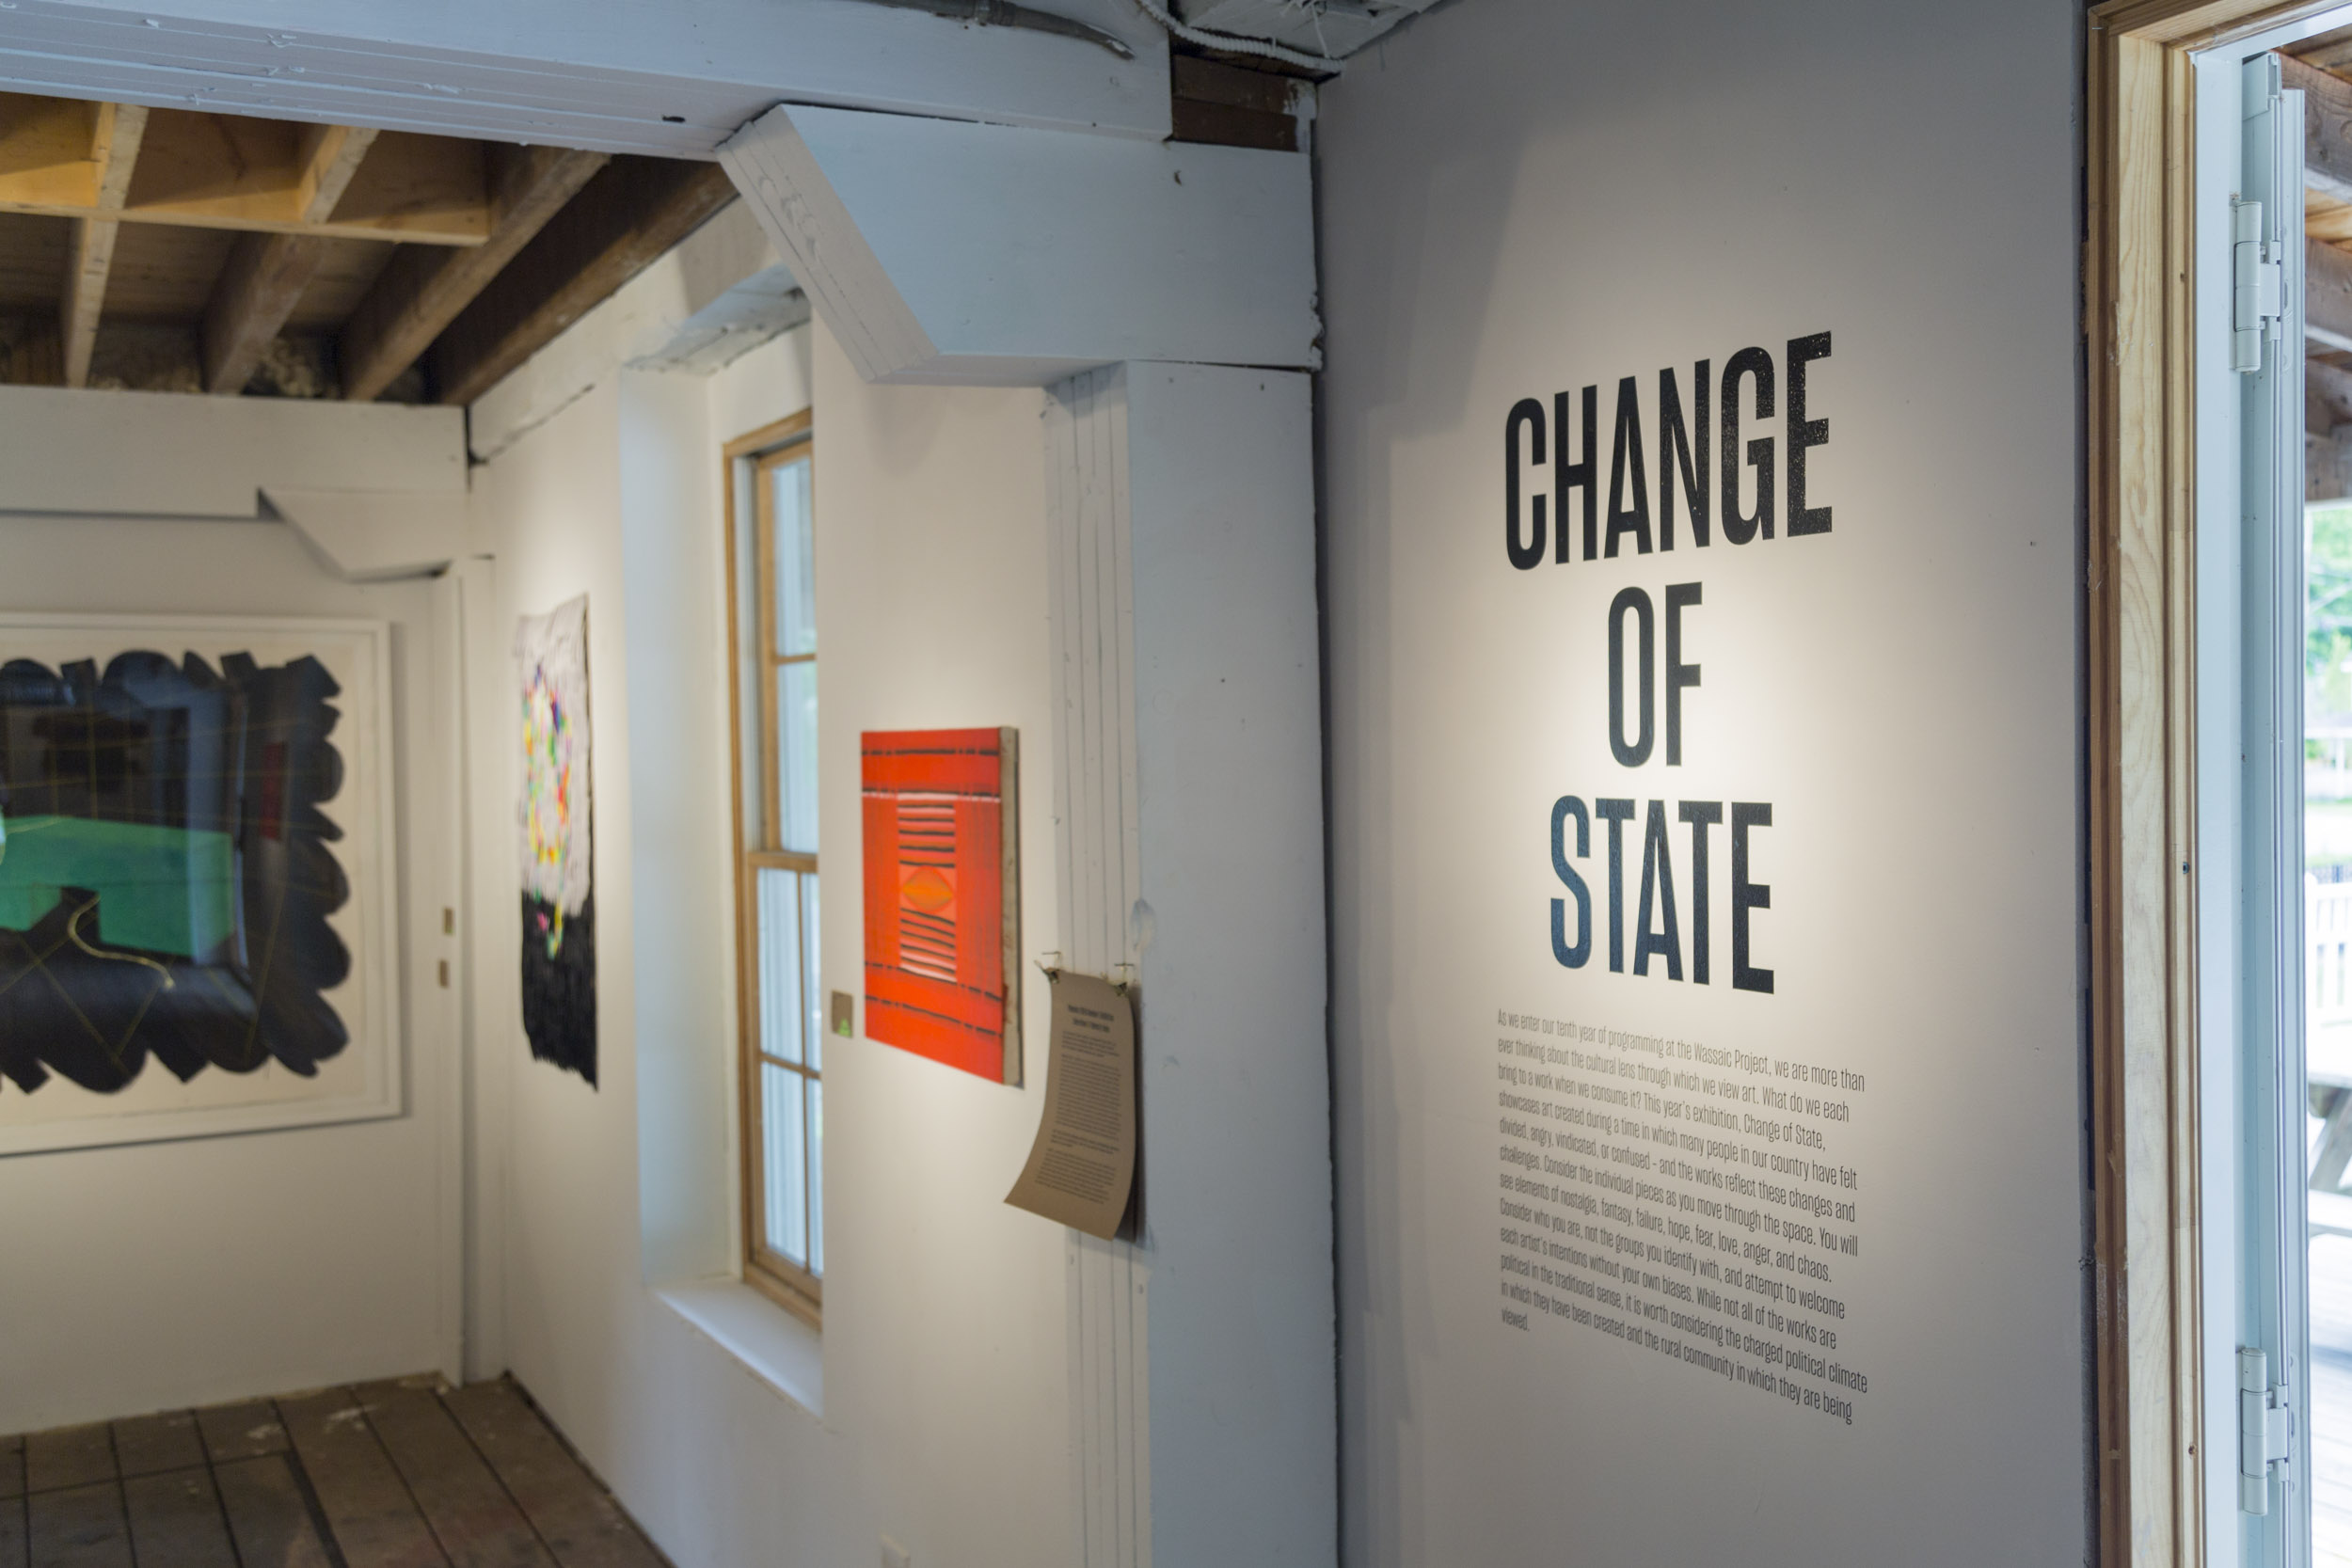 wassaic-project-exhibition-change-of-state-2018-06-10-13-33-38.jpg